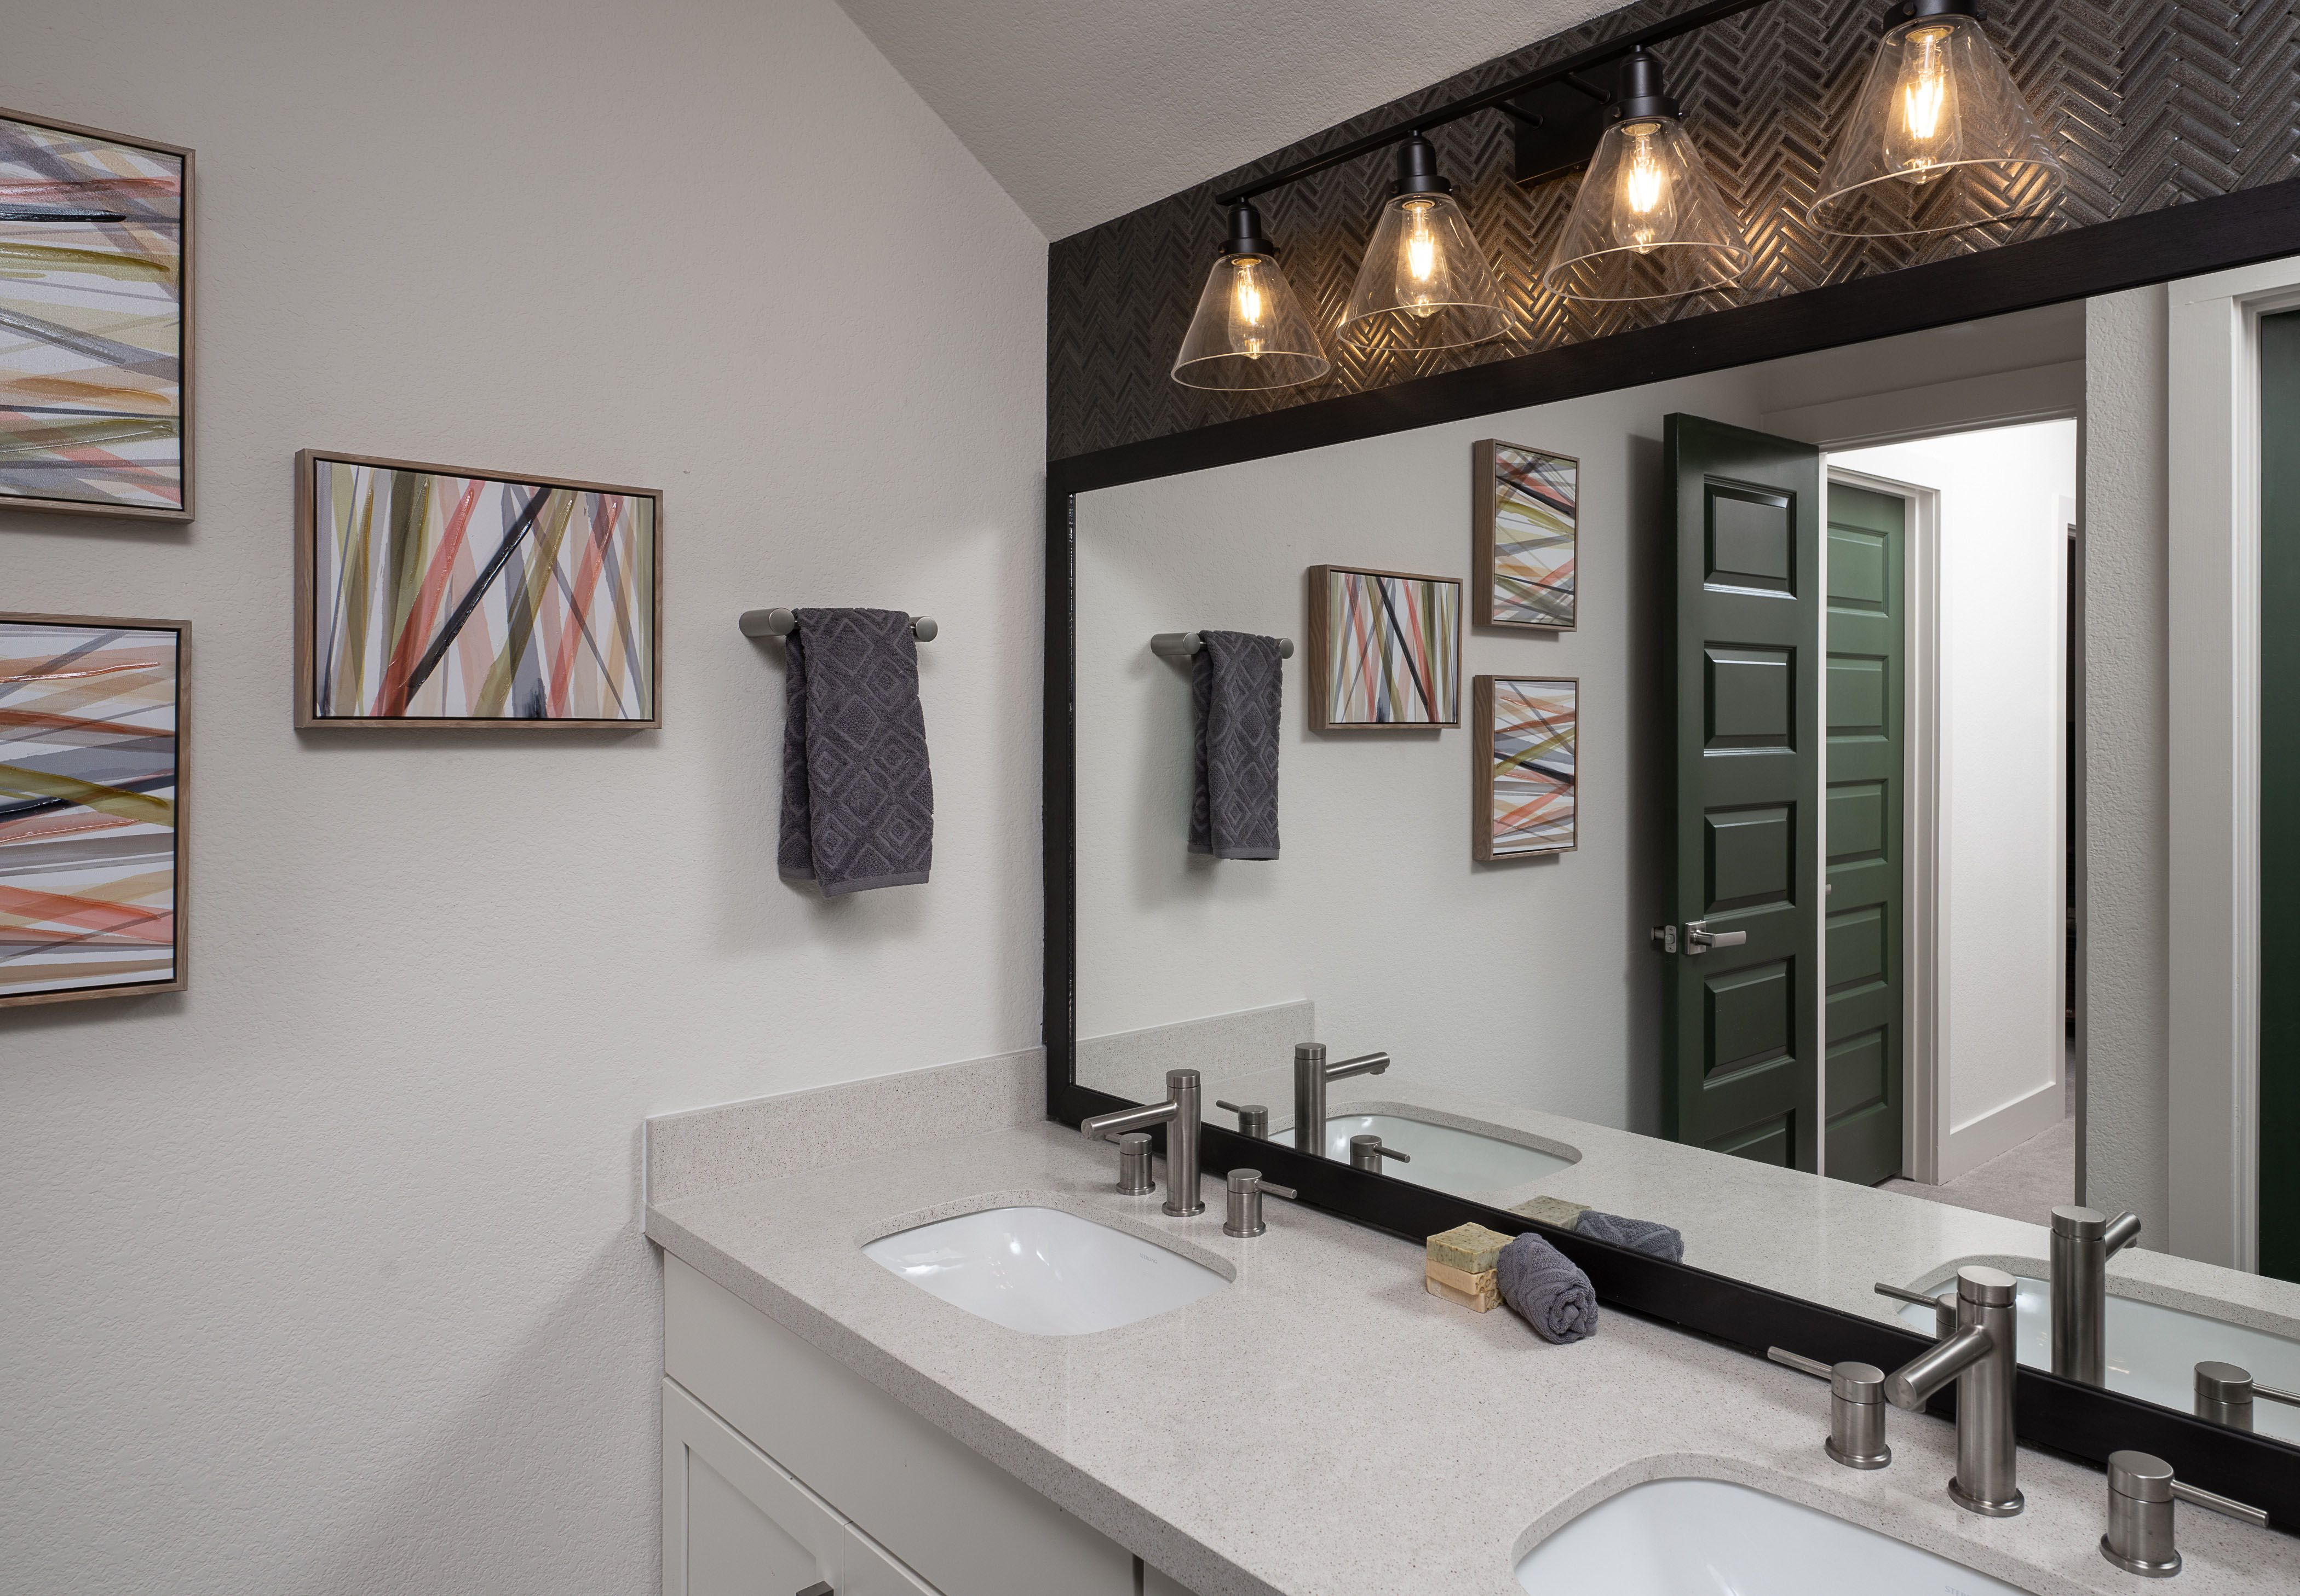 Bathroom featured in the Westlake By Ashton Woods in Austin, TX